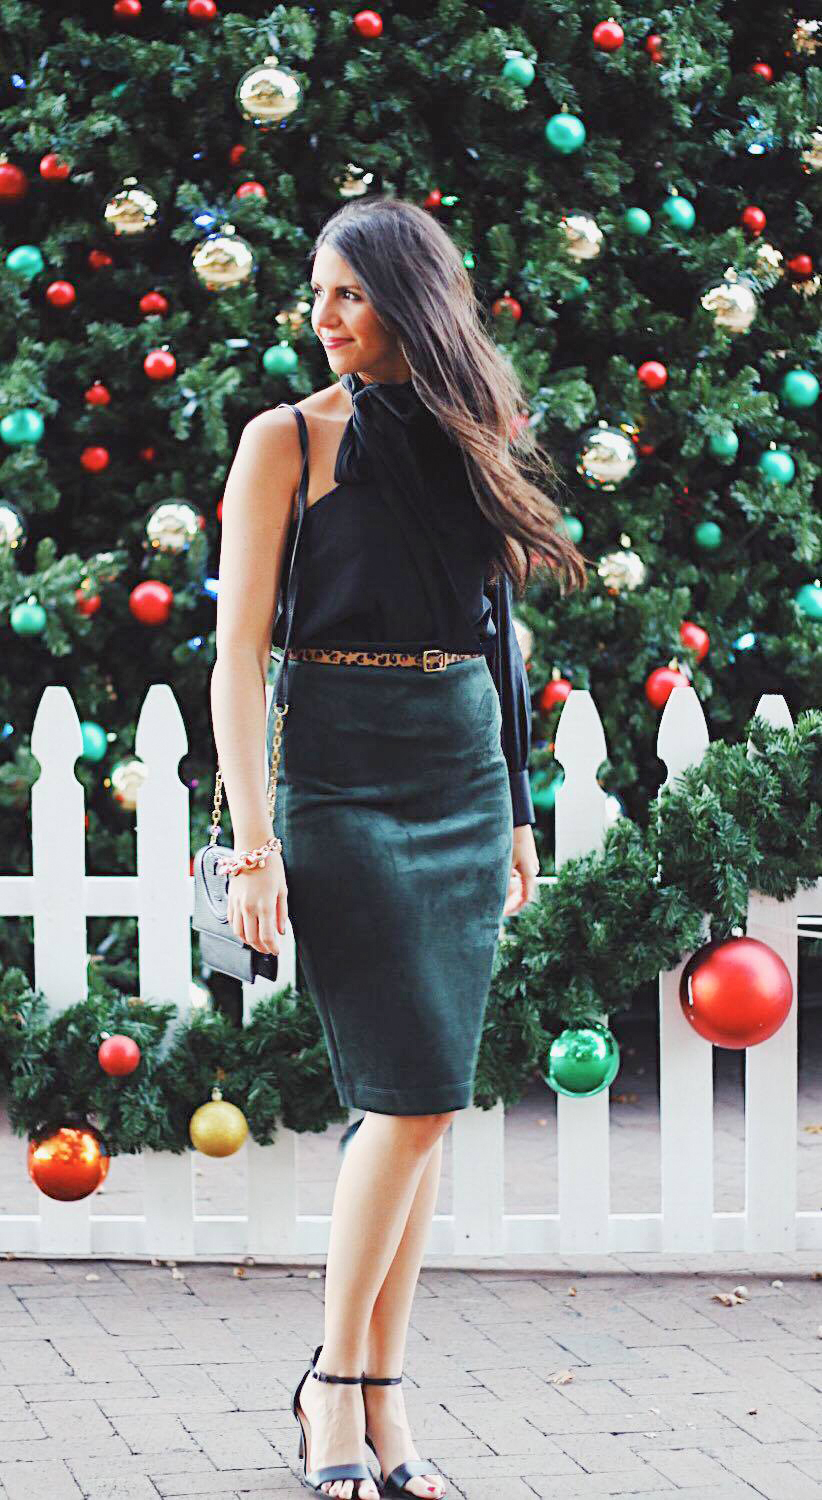 Emerald luxe - Holiday party outfit 3. Pair the velvet skirt with a leopard belt to create an interesting and seamless look.